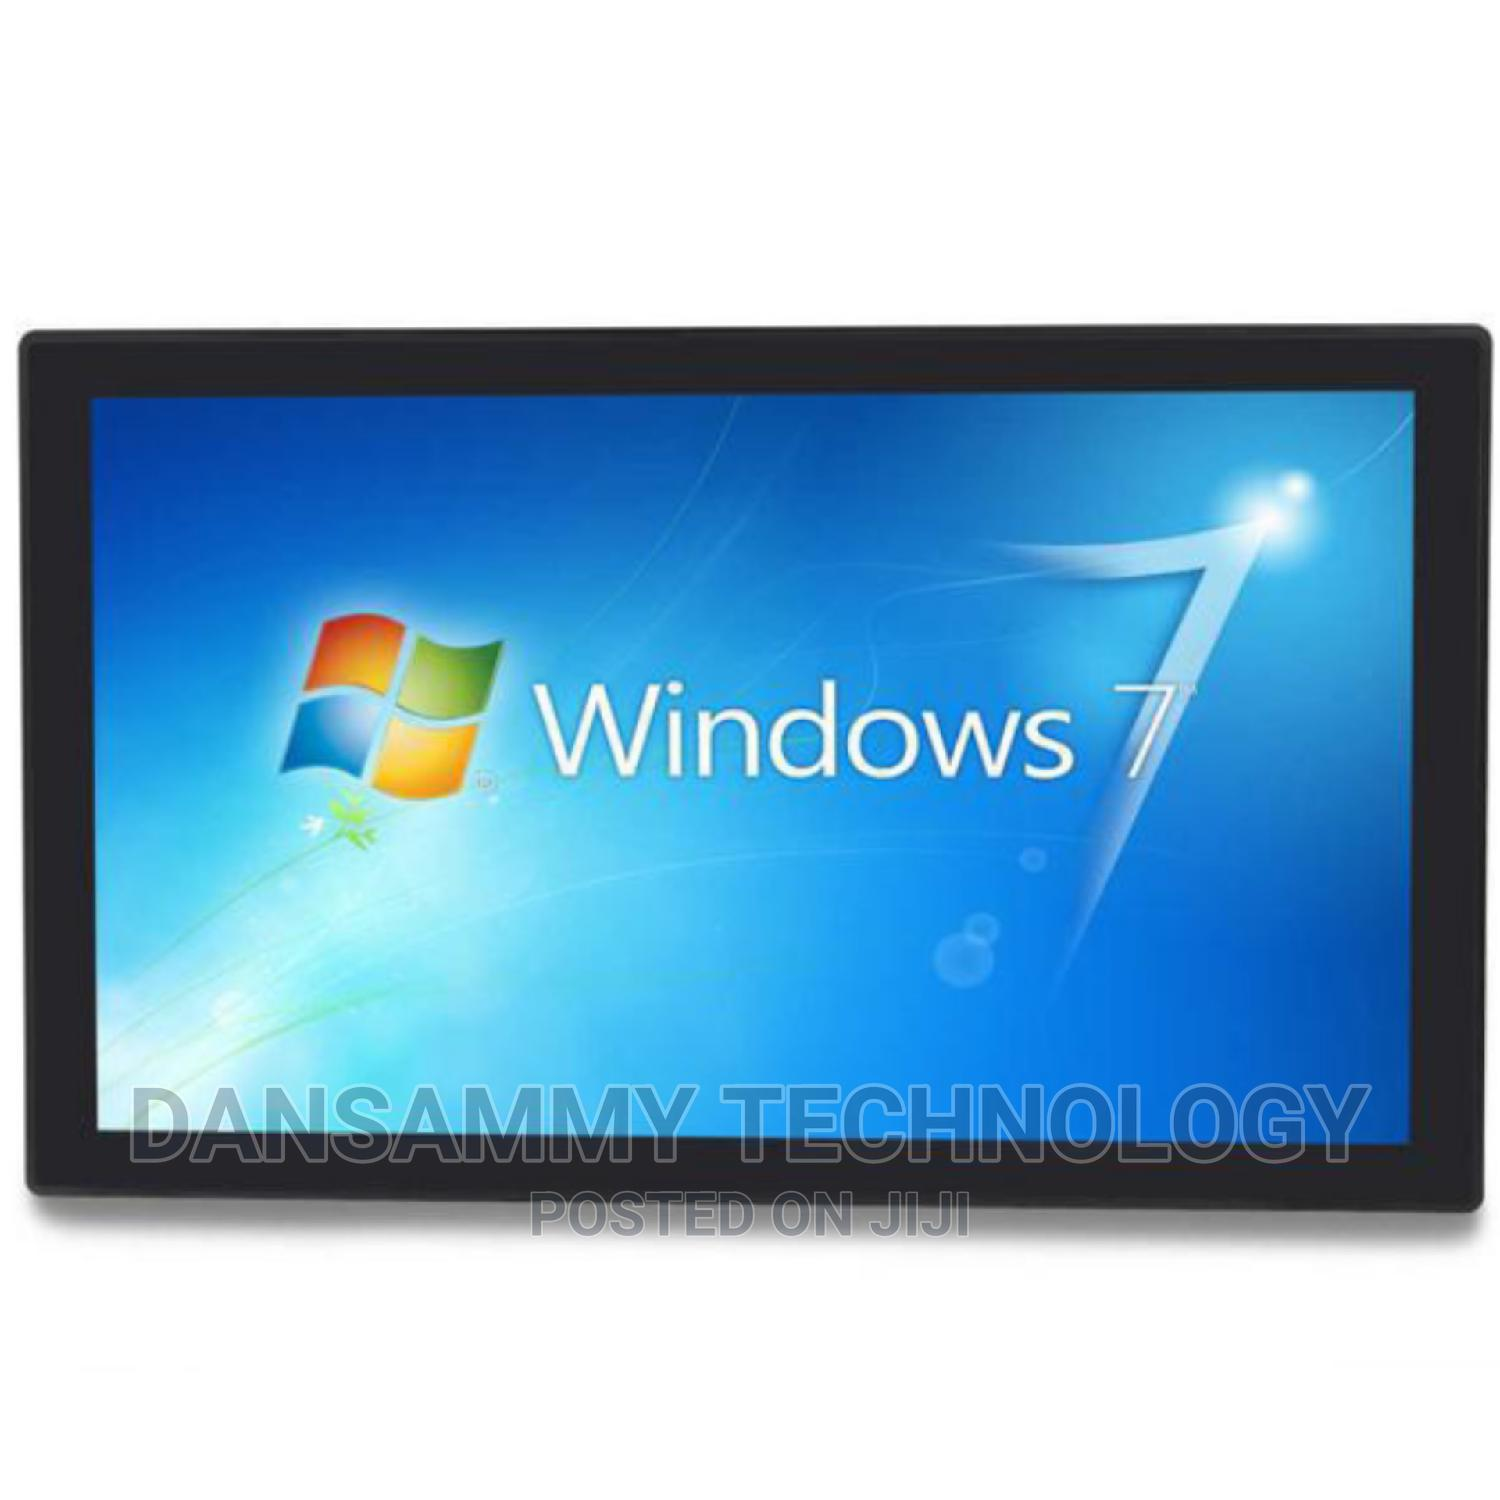 Wall Mount, All in One Pos System, 21.5 Inches Touch Screen